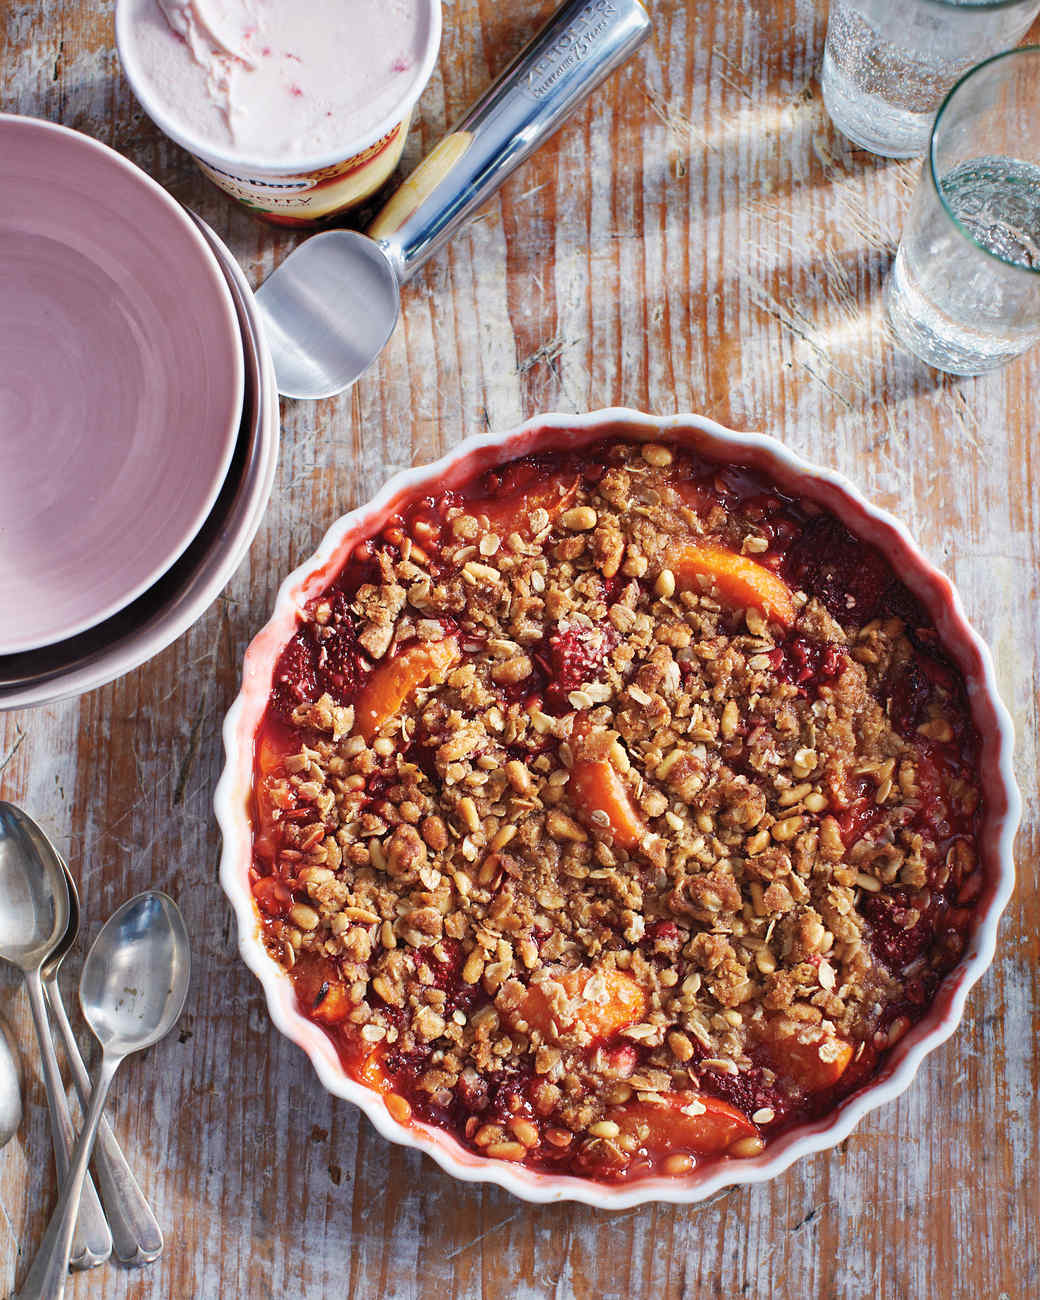 strawberry-and-apricot-crisp-with-pine-nut-crumble-ma130124.jpg